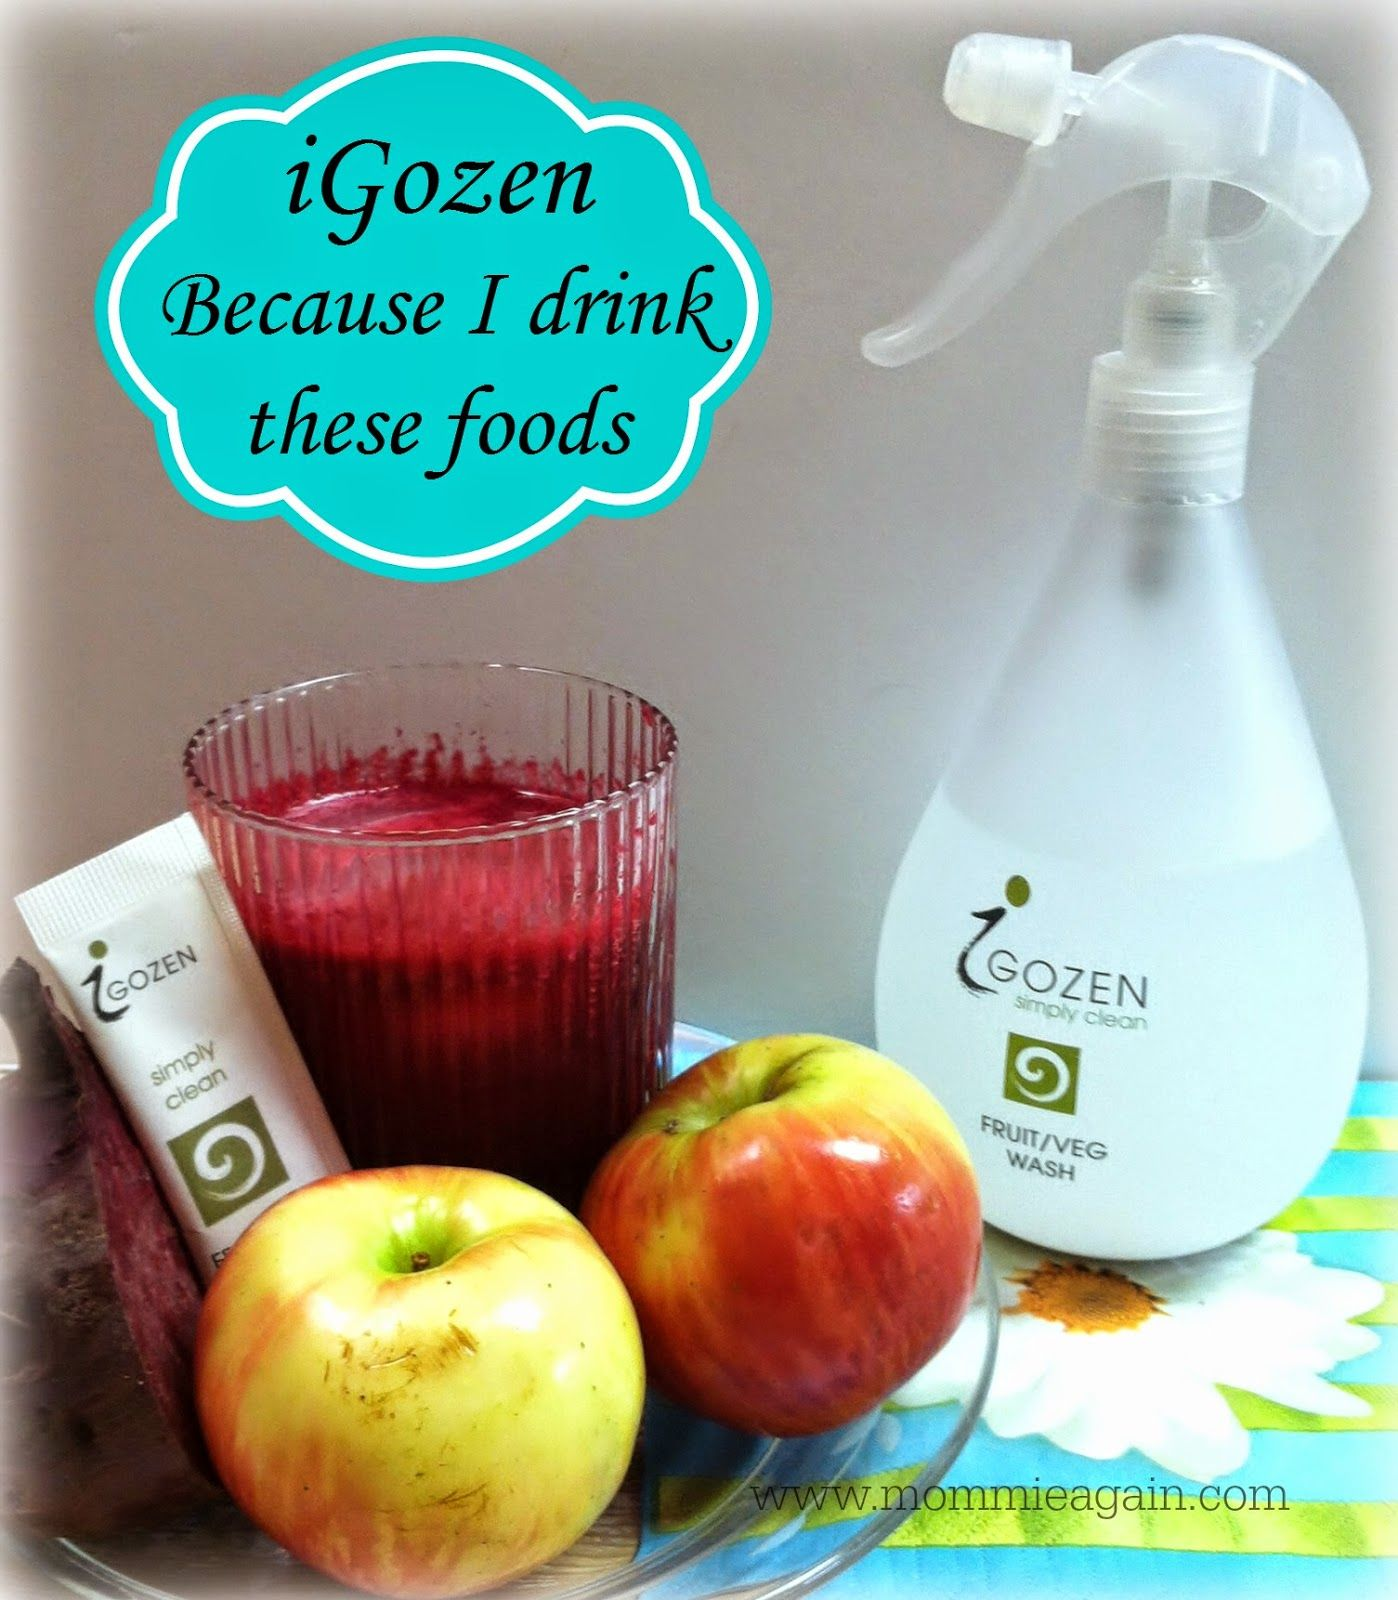 Mommie...Again: When Water is not Enough. Fruit and Vegetable Organic Wash iGOZEN + Giveaway US ONLY Ends 7/10/14 #iGOZEN